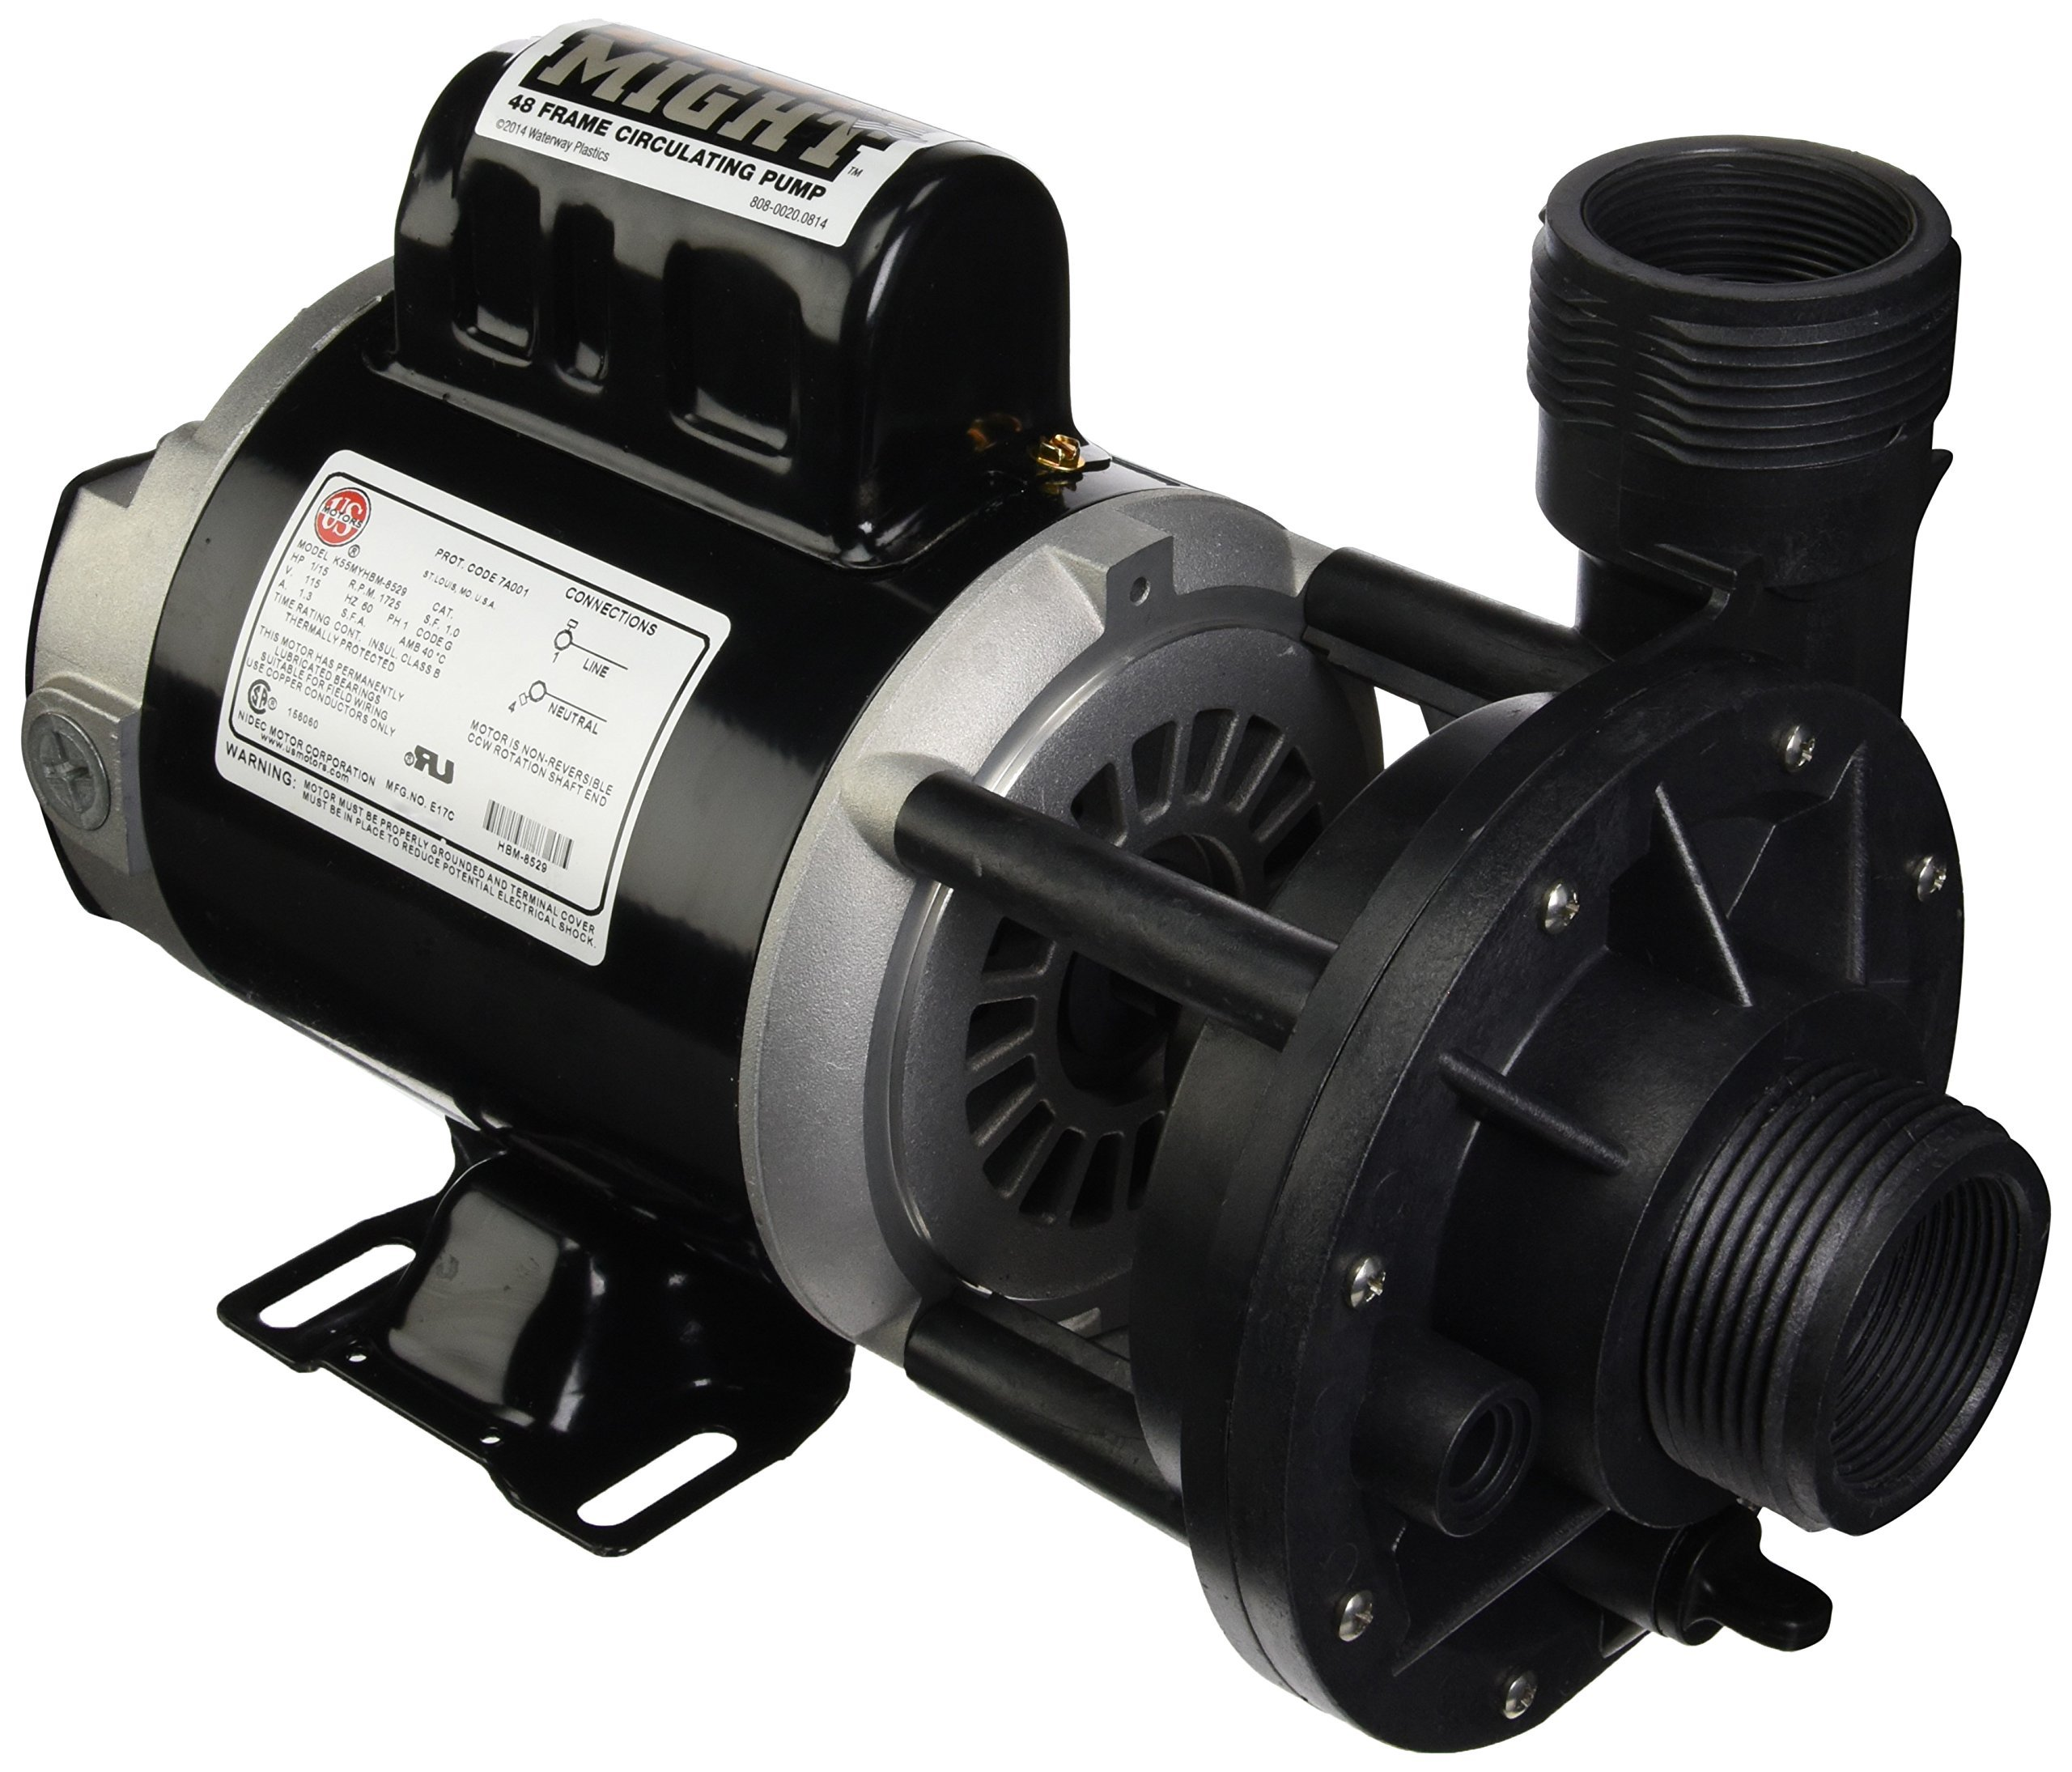 Waterway Plastics 3410030-1E 115V # Iron Might Pond Pump by Waterway Plastics